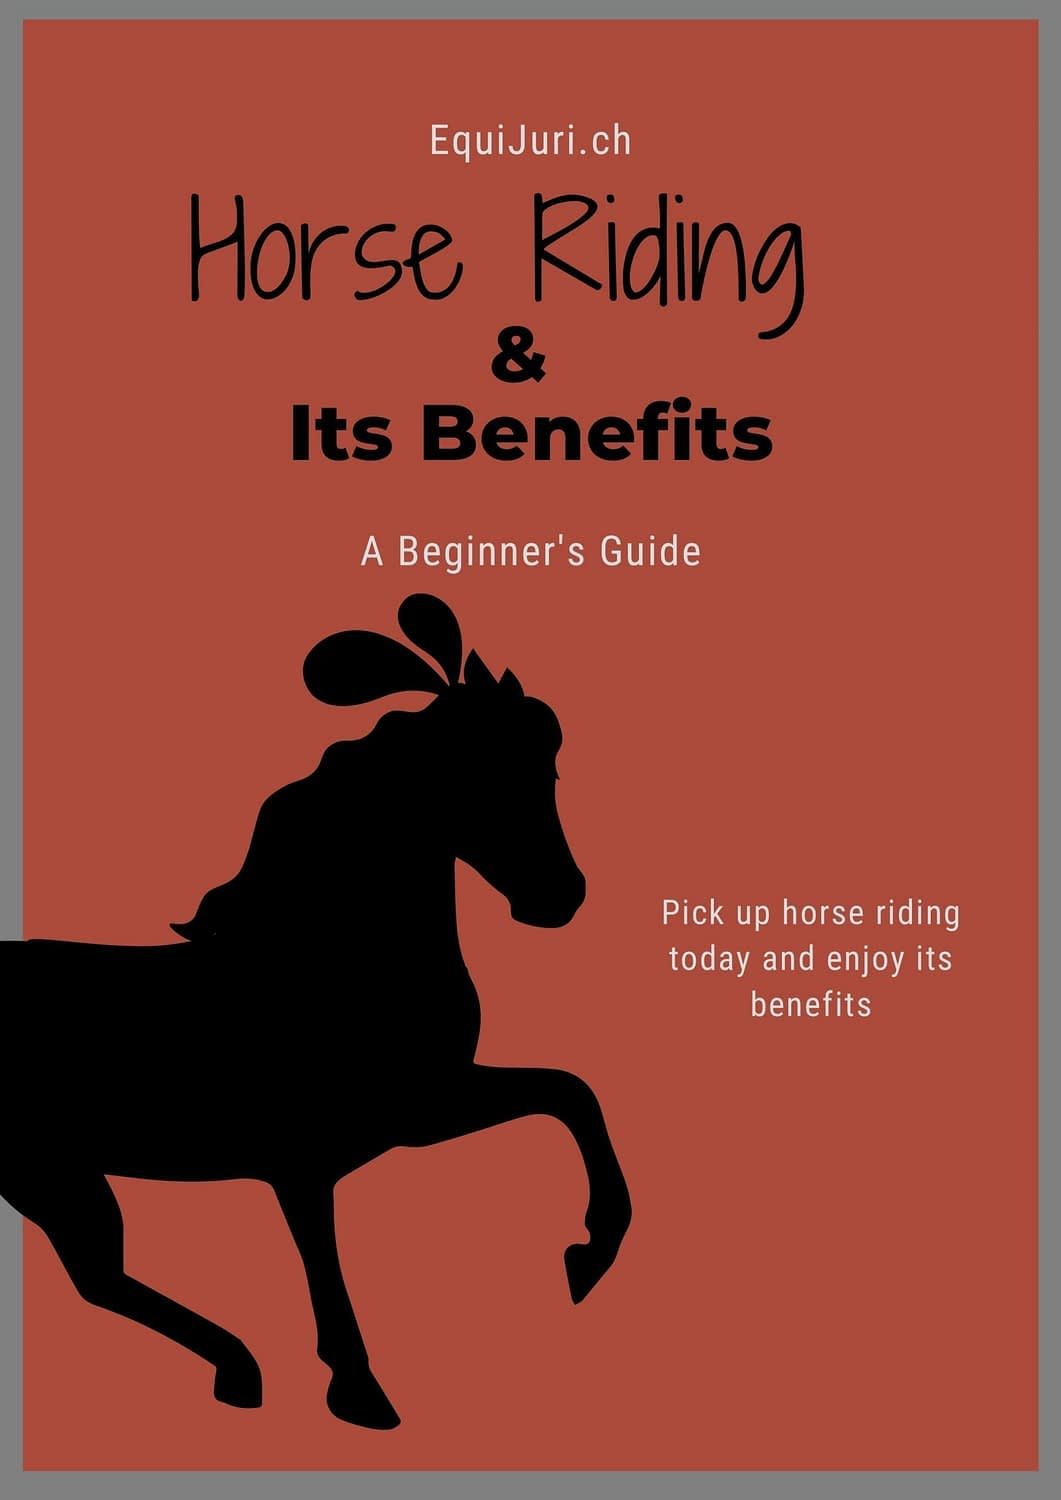 Horse Riding & Its Benefits With EquiJuri